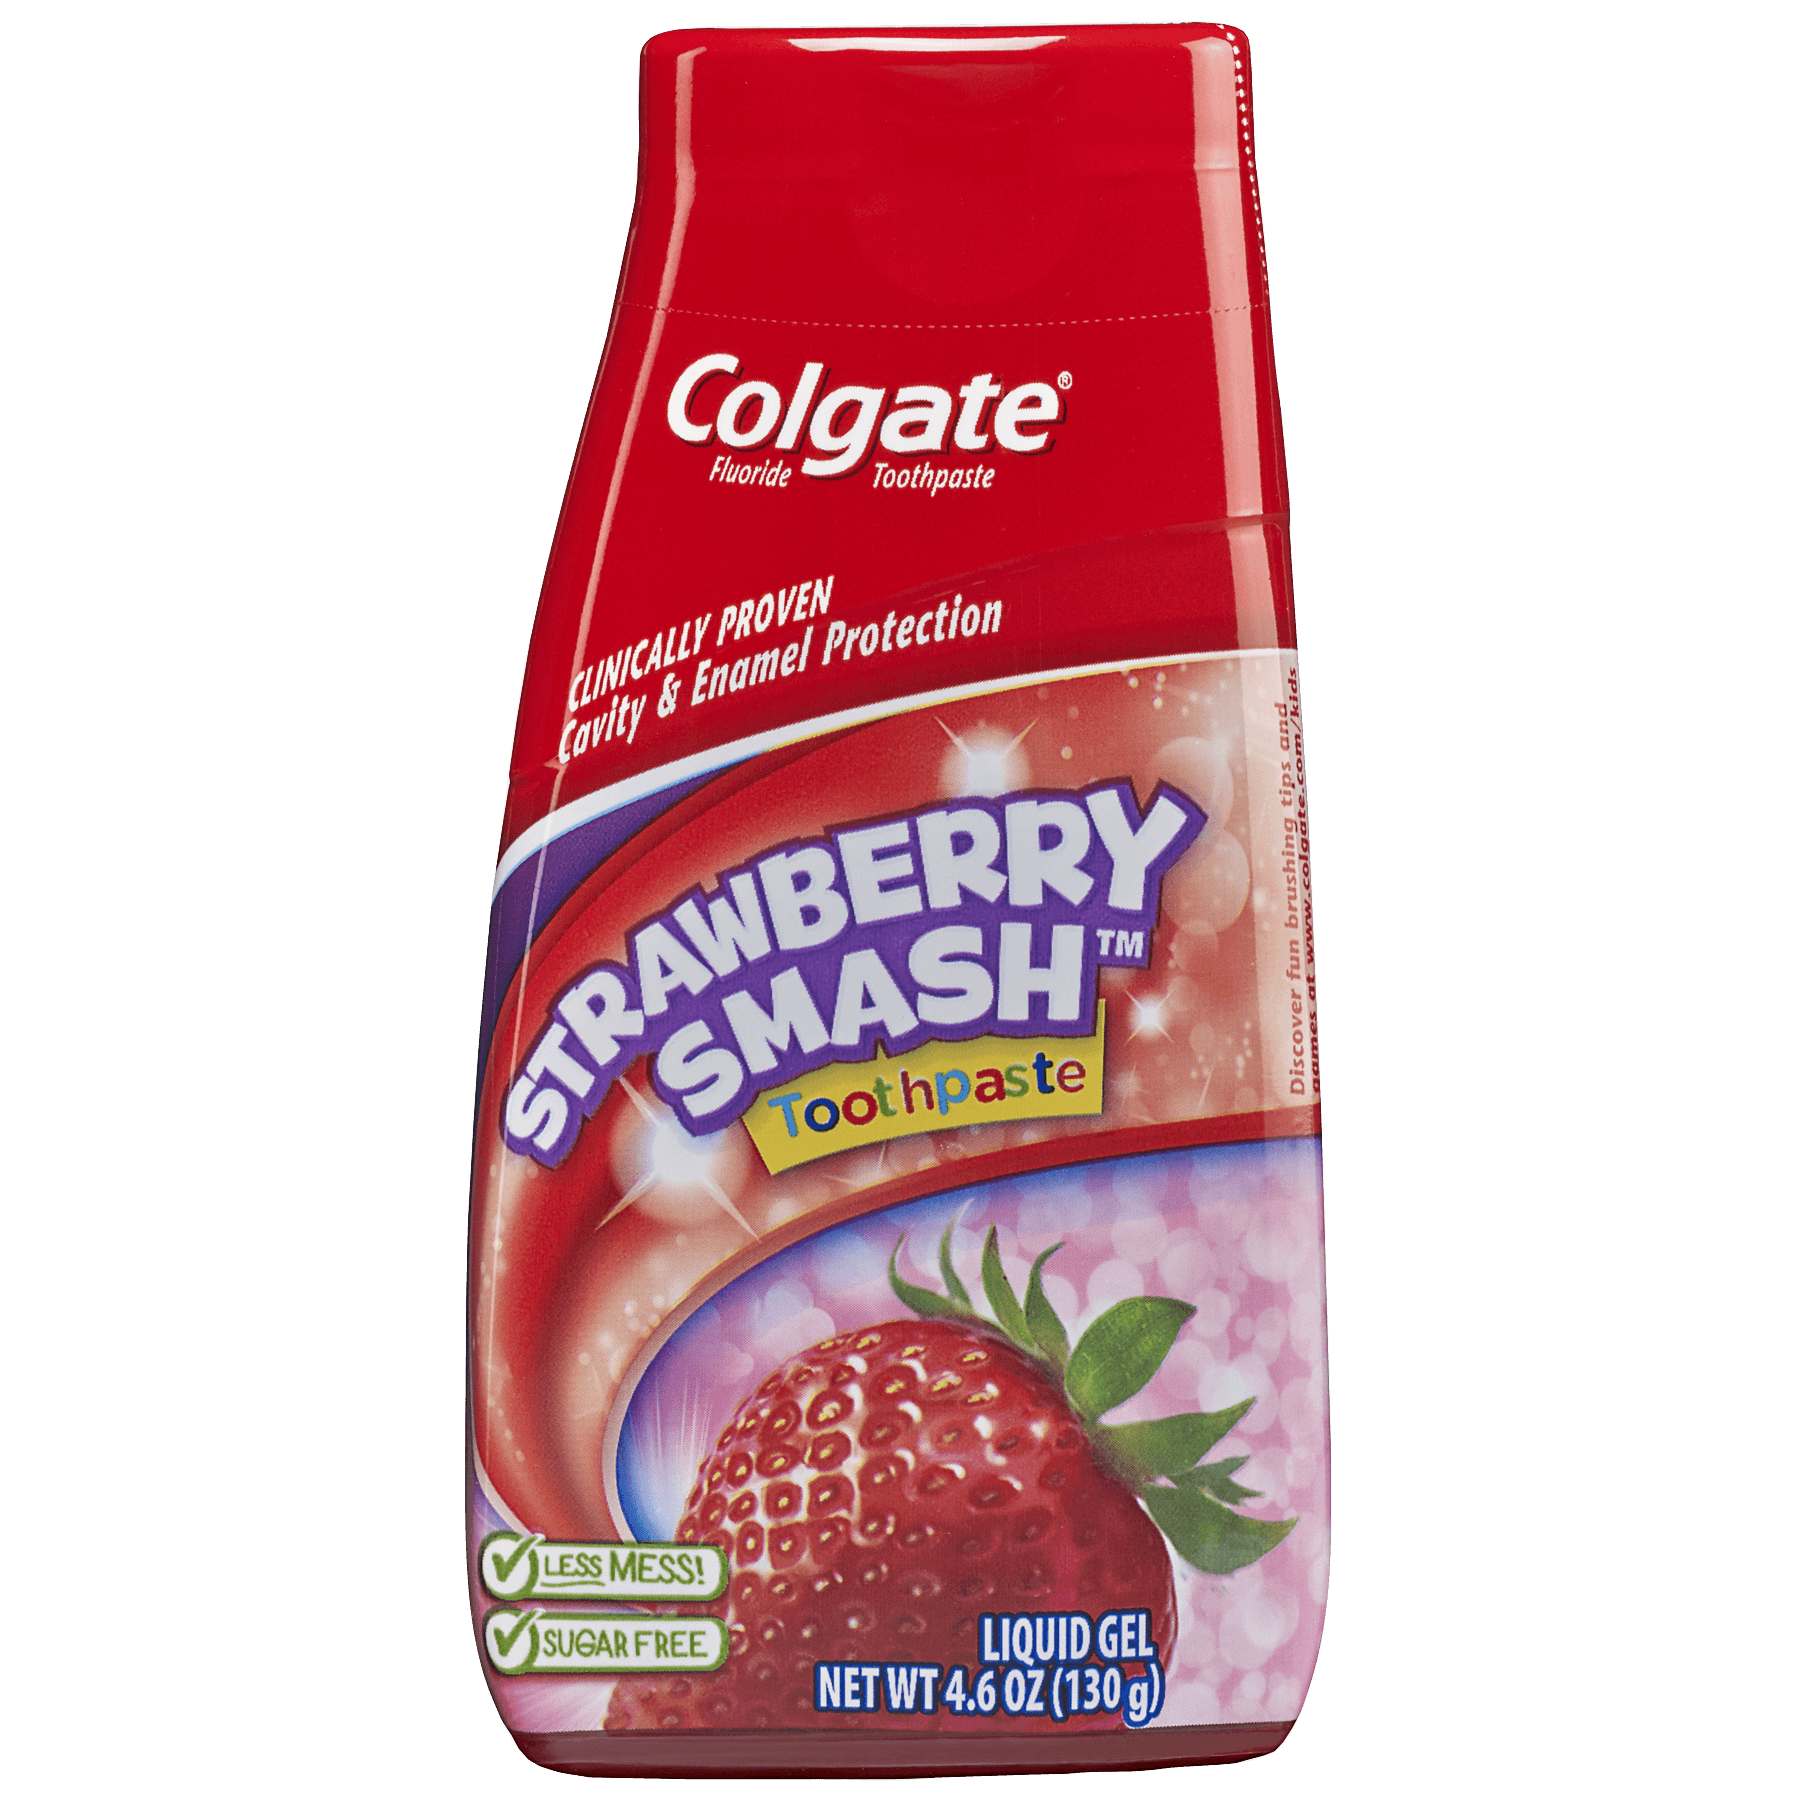 (2 pack) Colgate Kids 2-in-1 Toothpaste and Mouthwash, Strawberry - 4.6 oz